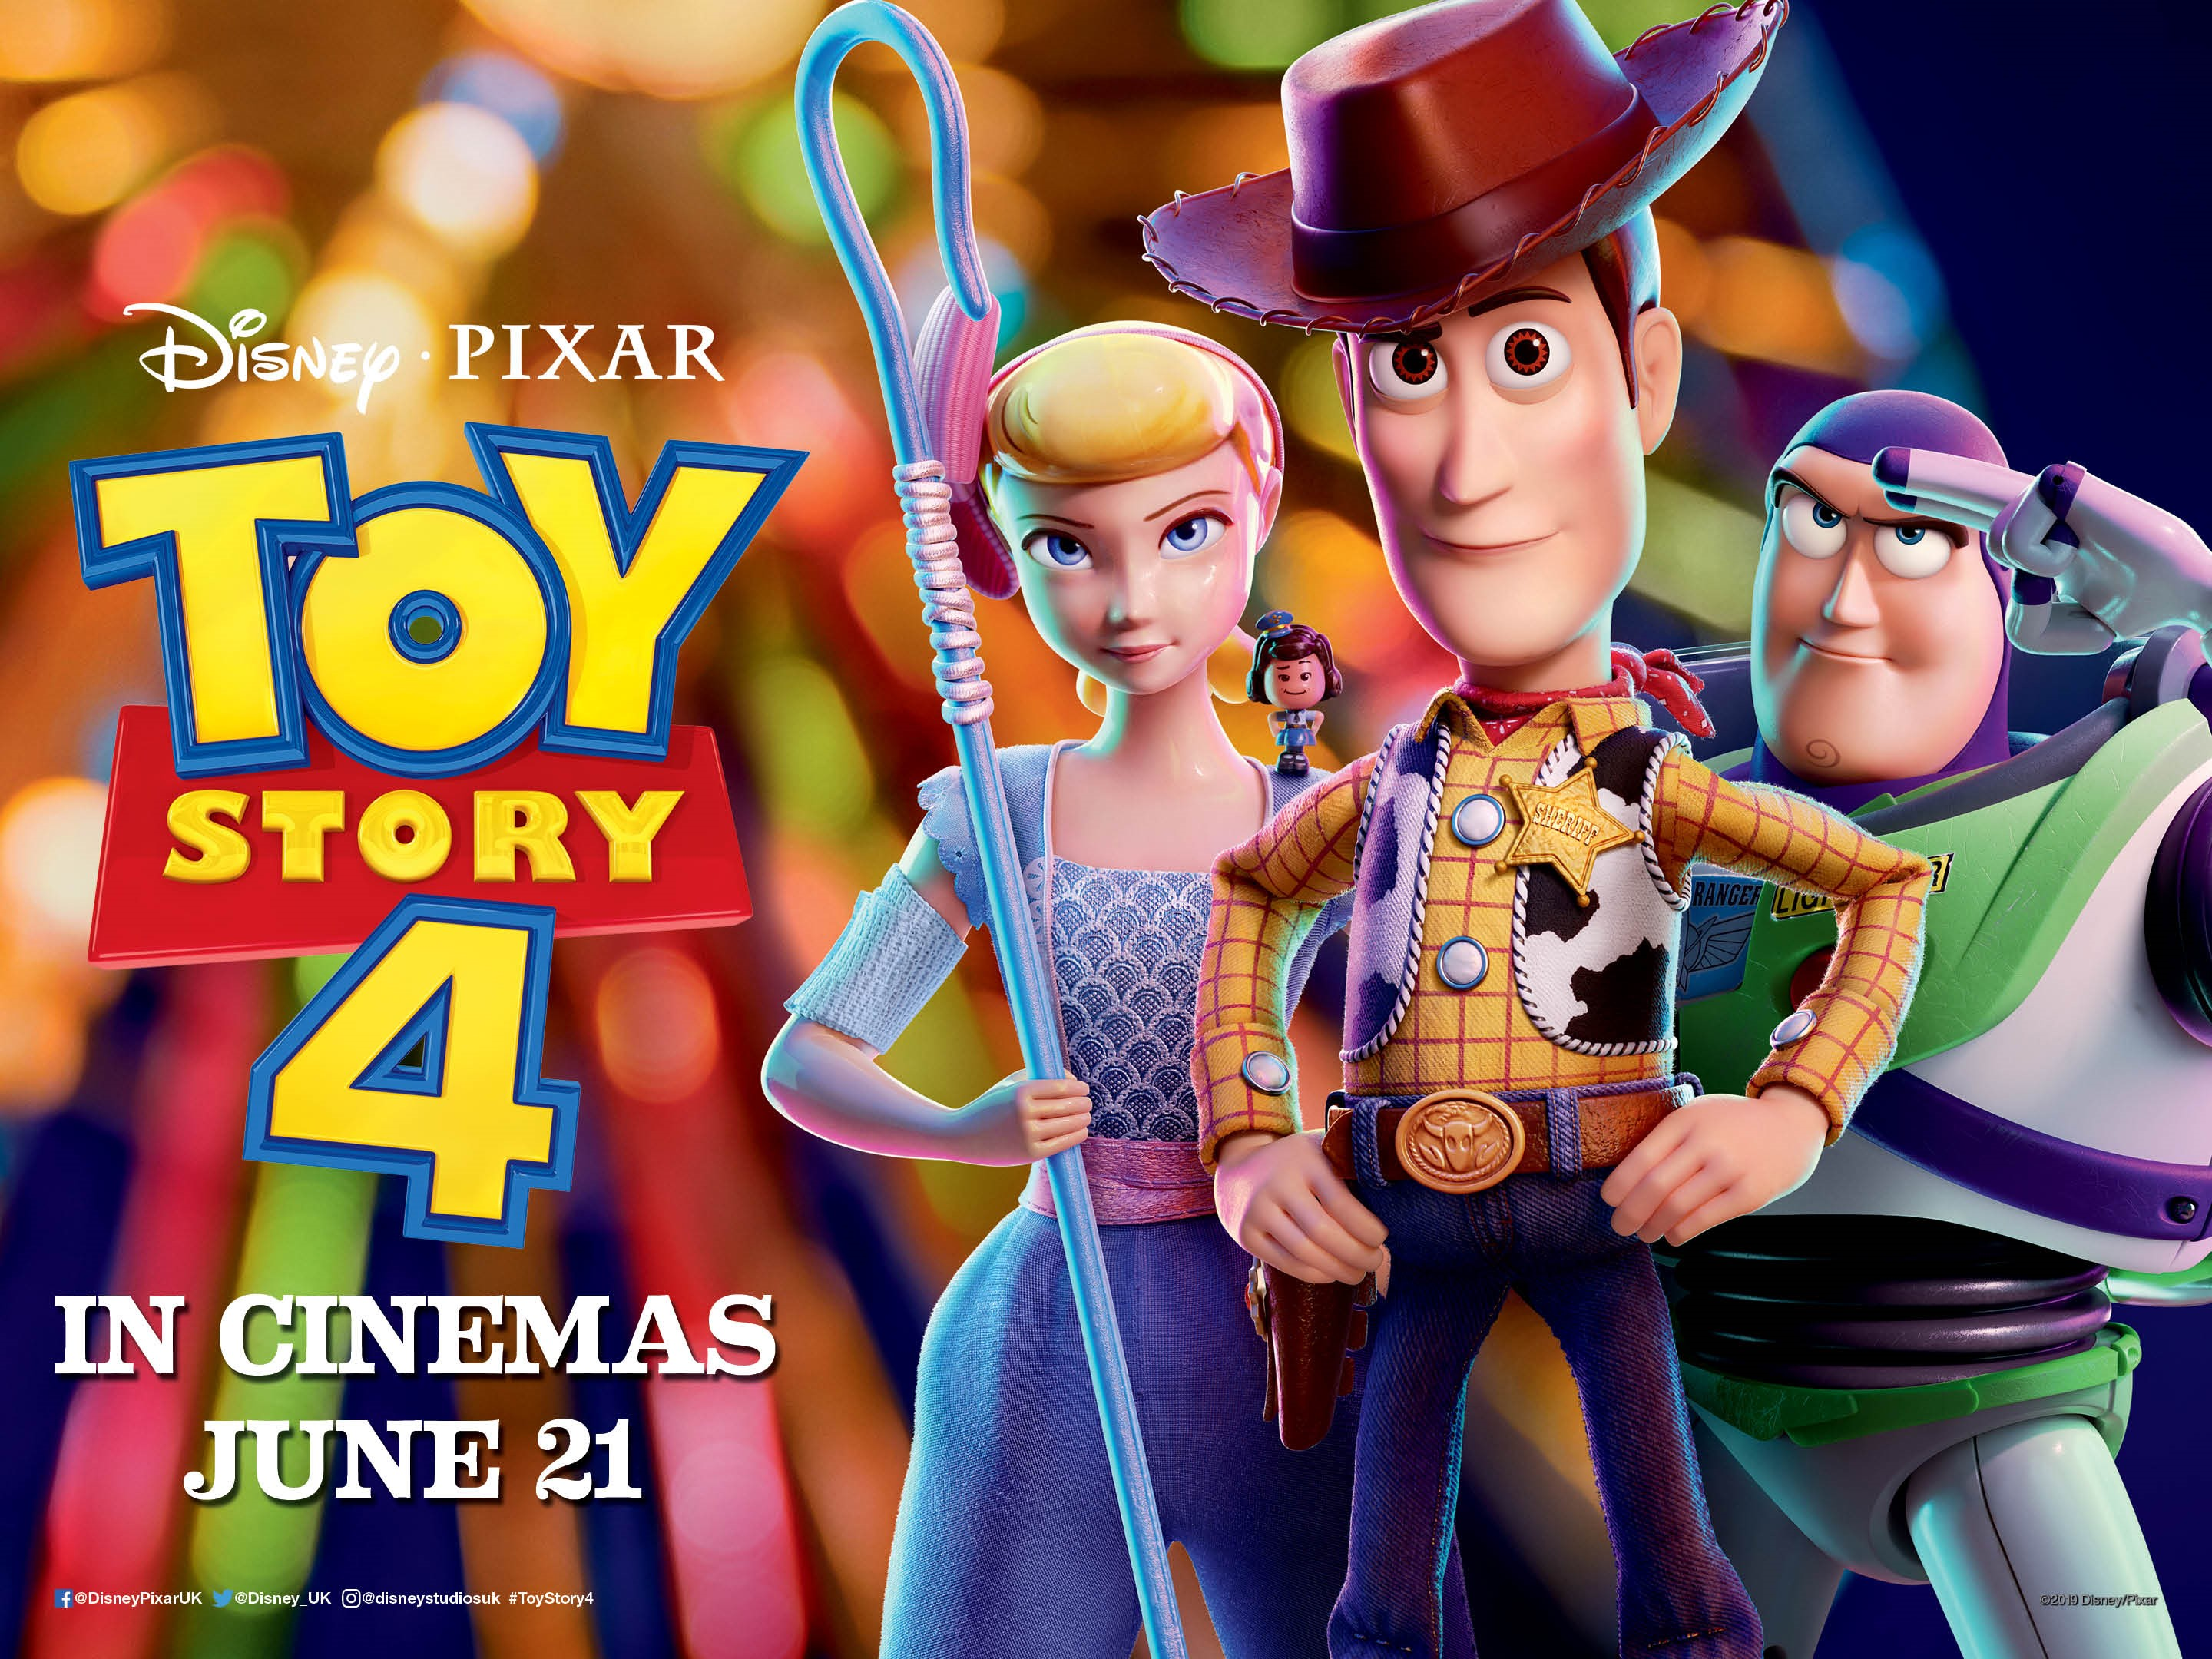 Family Film: Toy Story 4